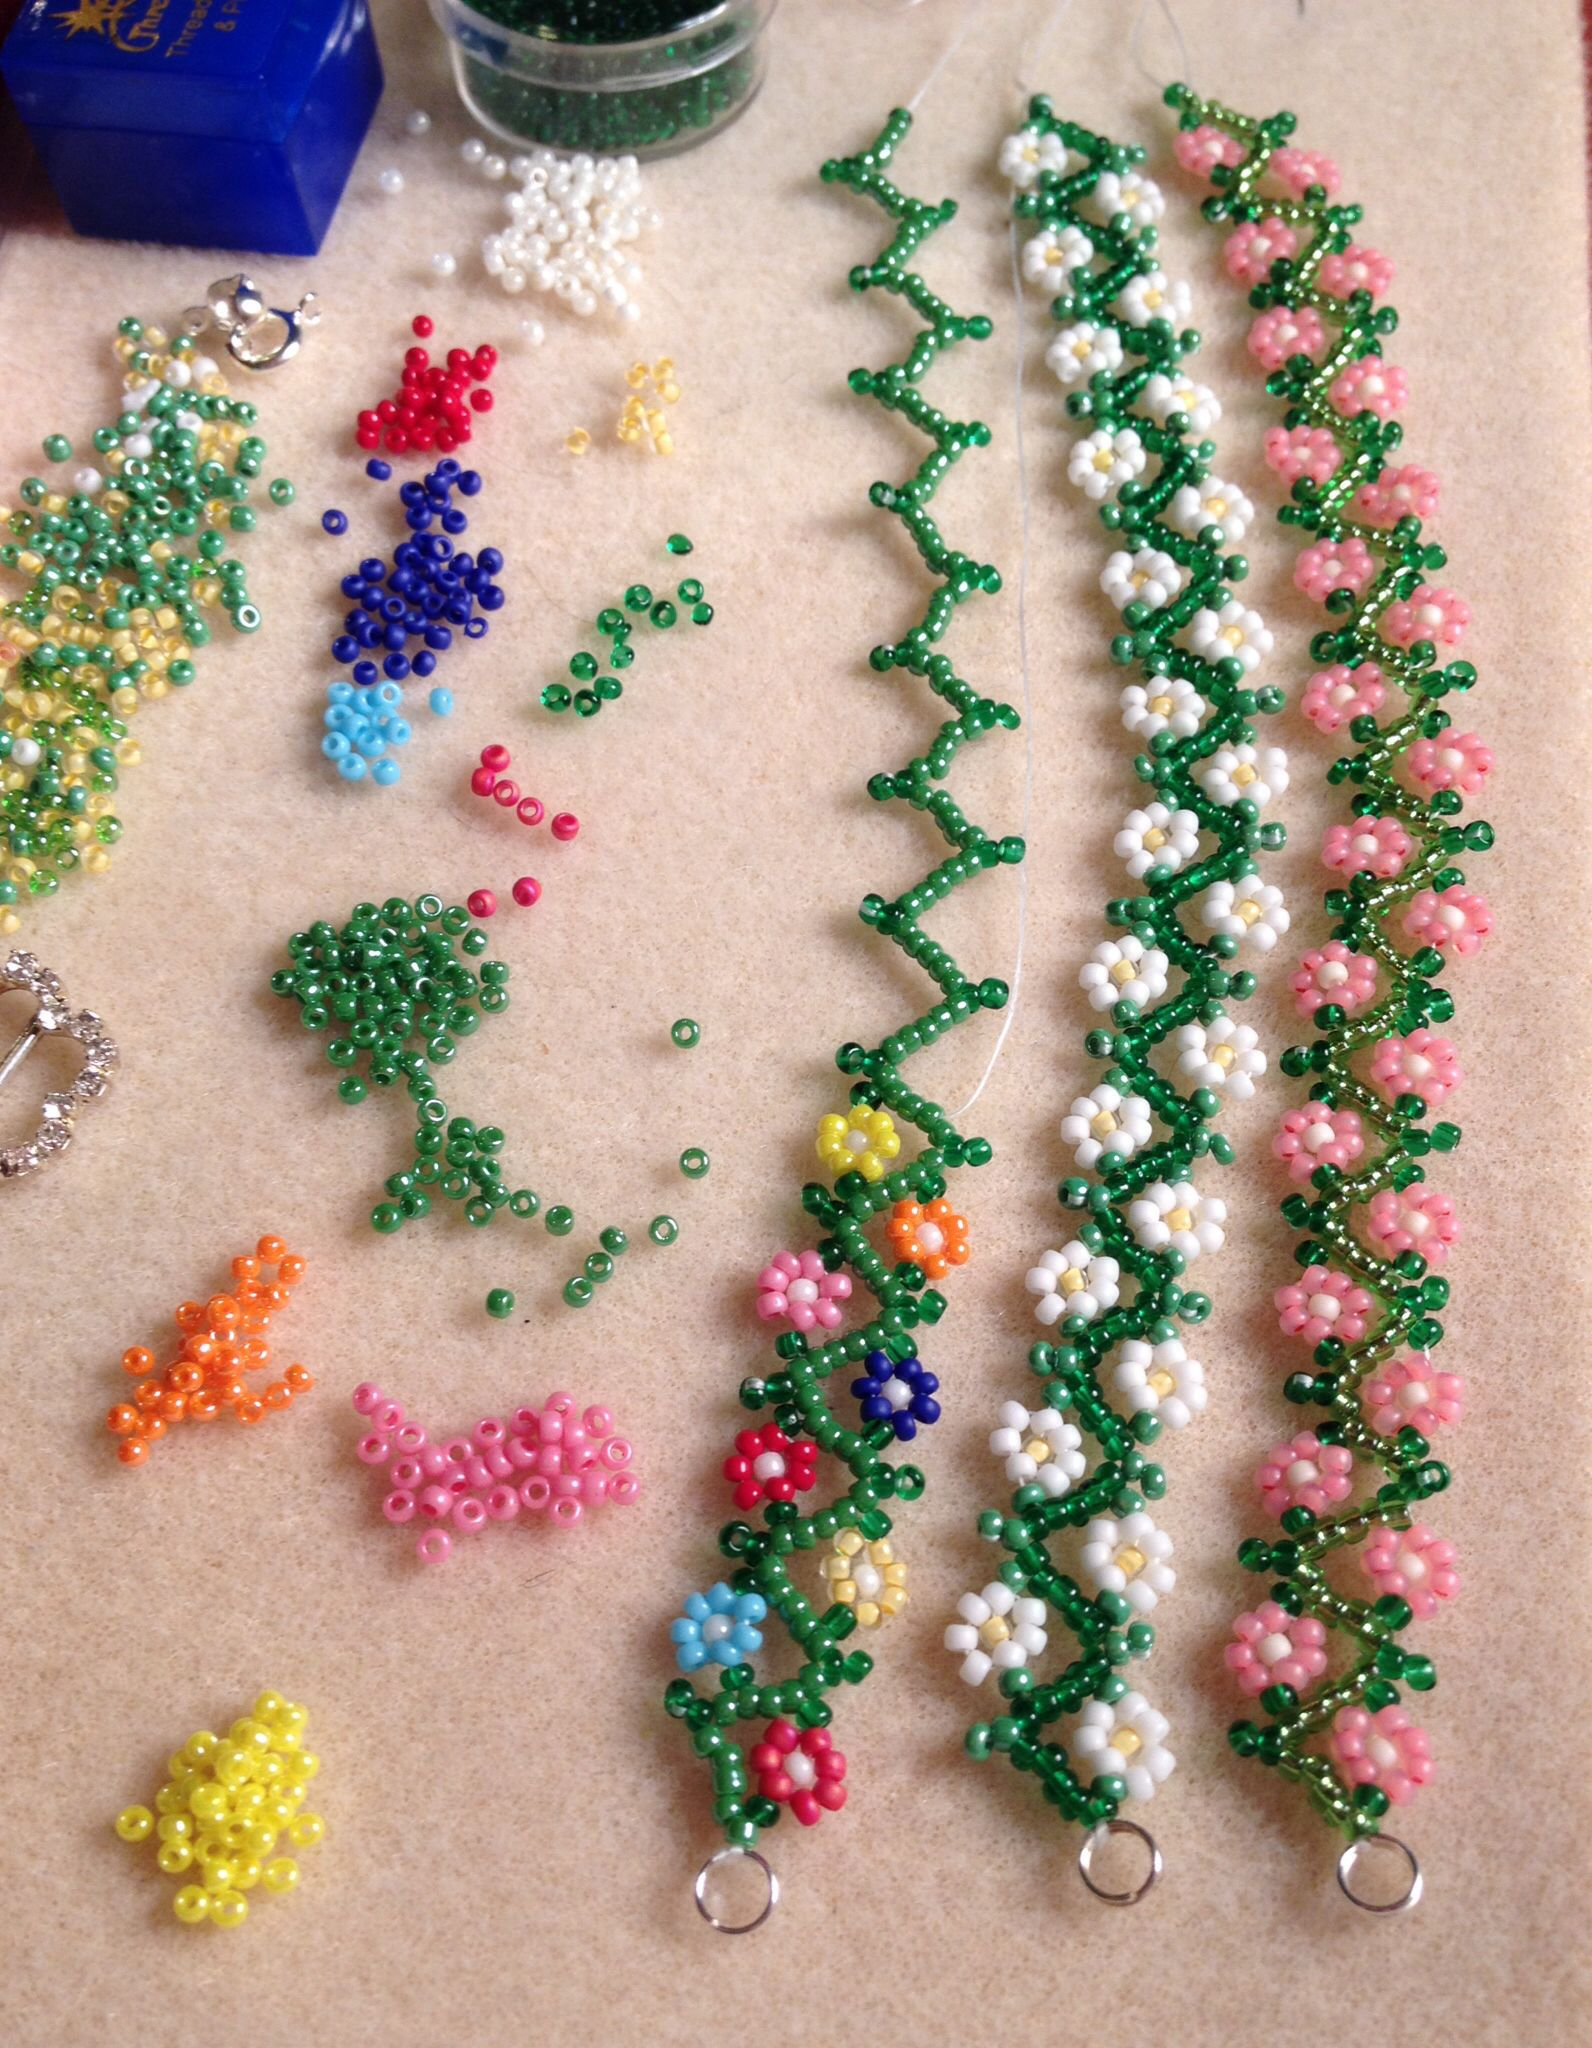 mega design beados bead shop jw brand shopkins station beads